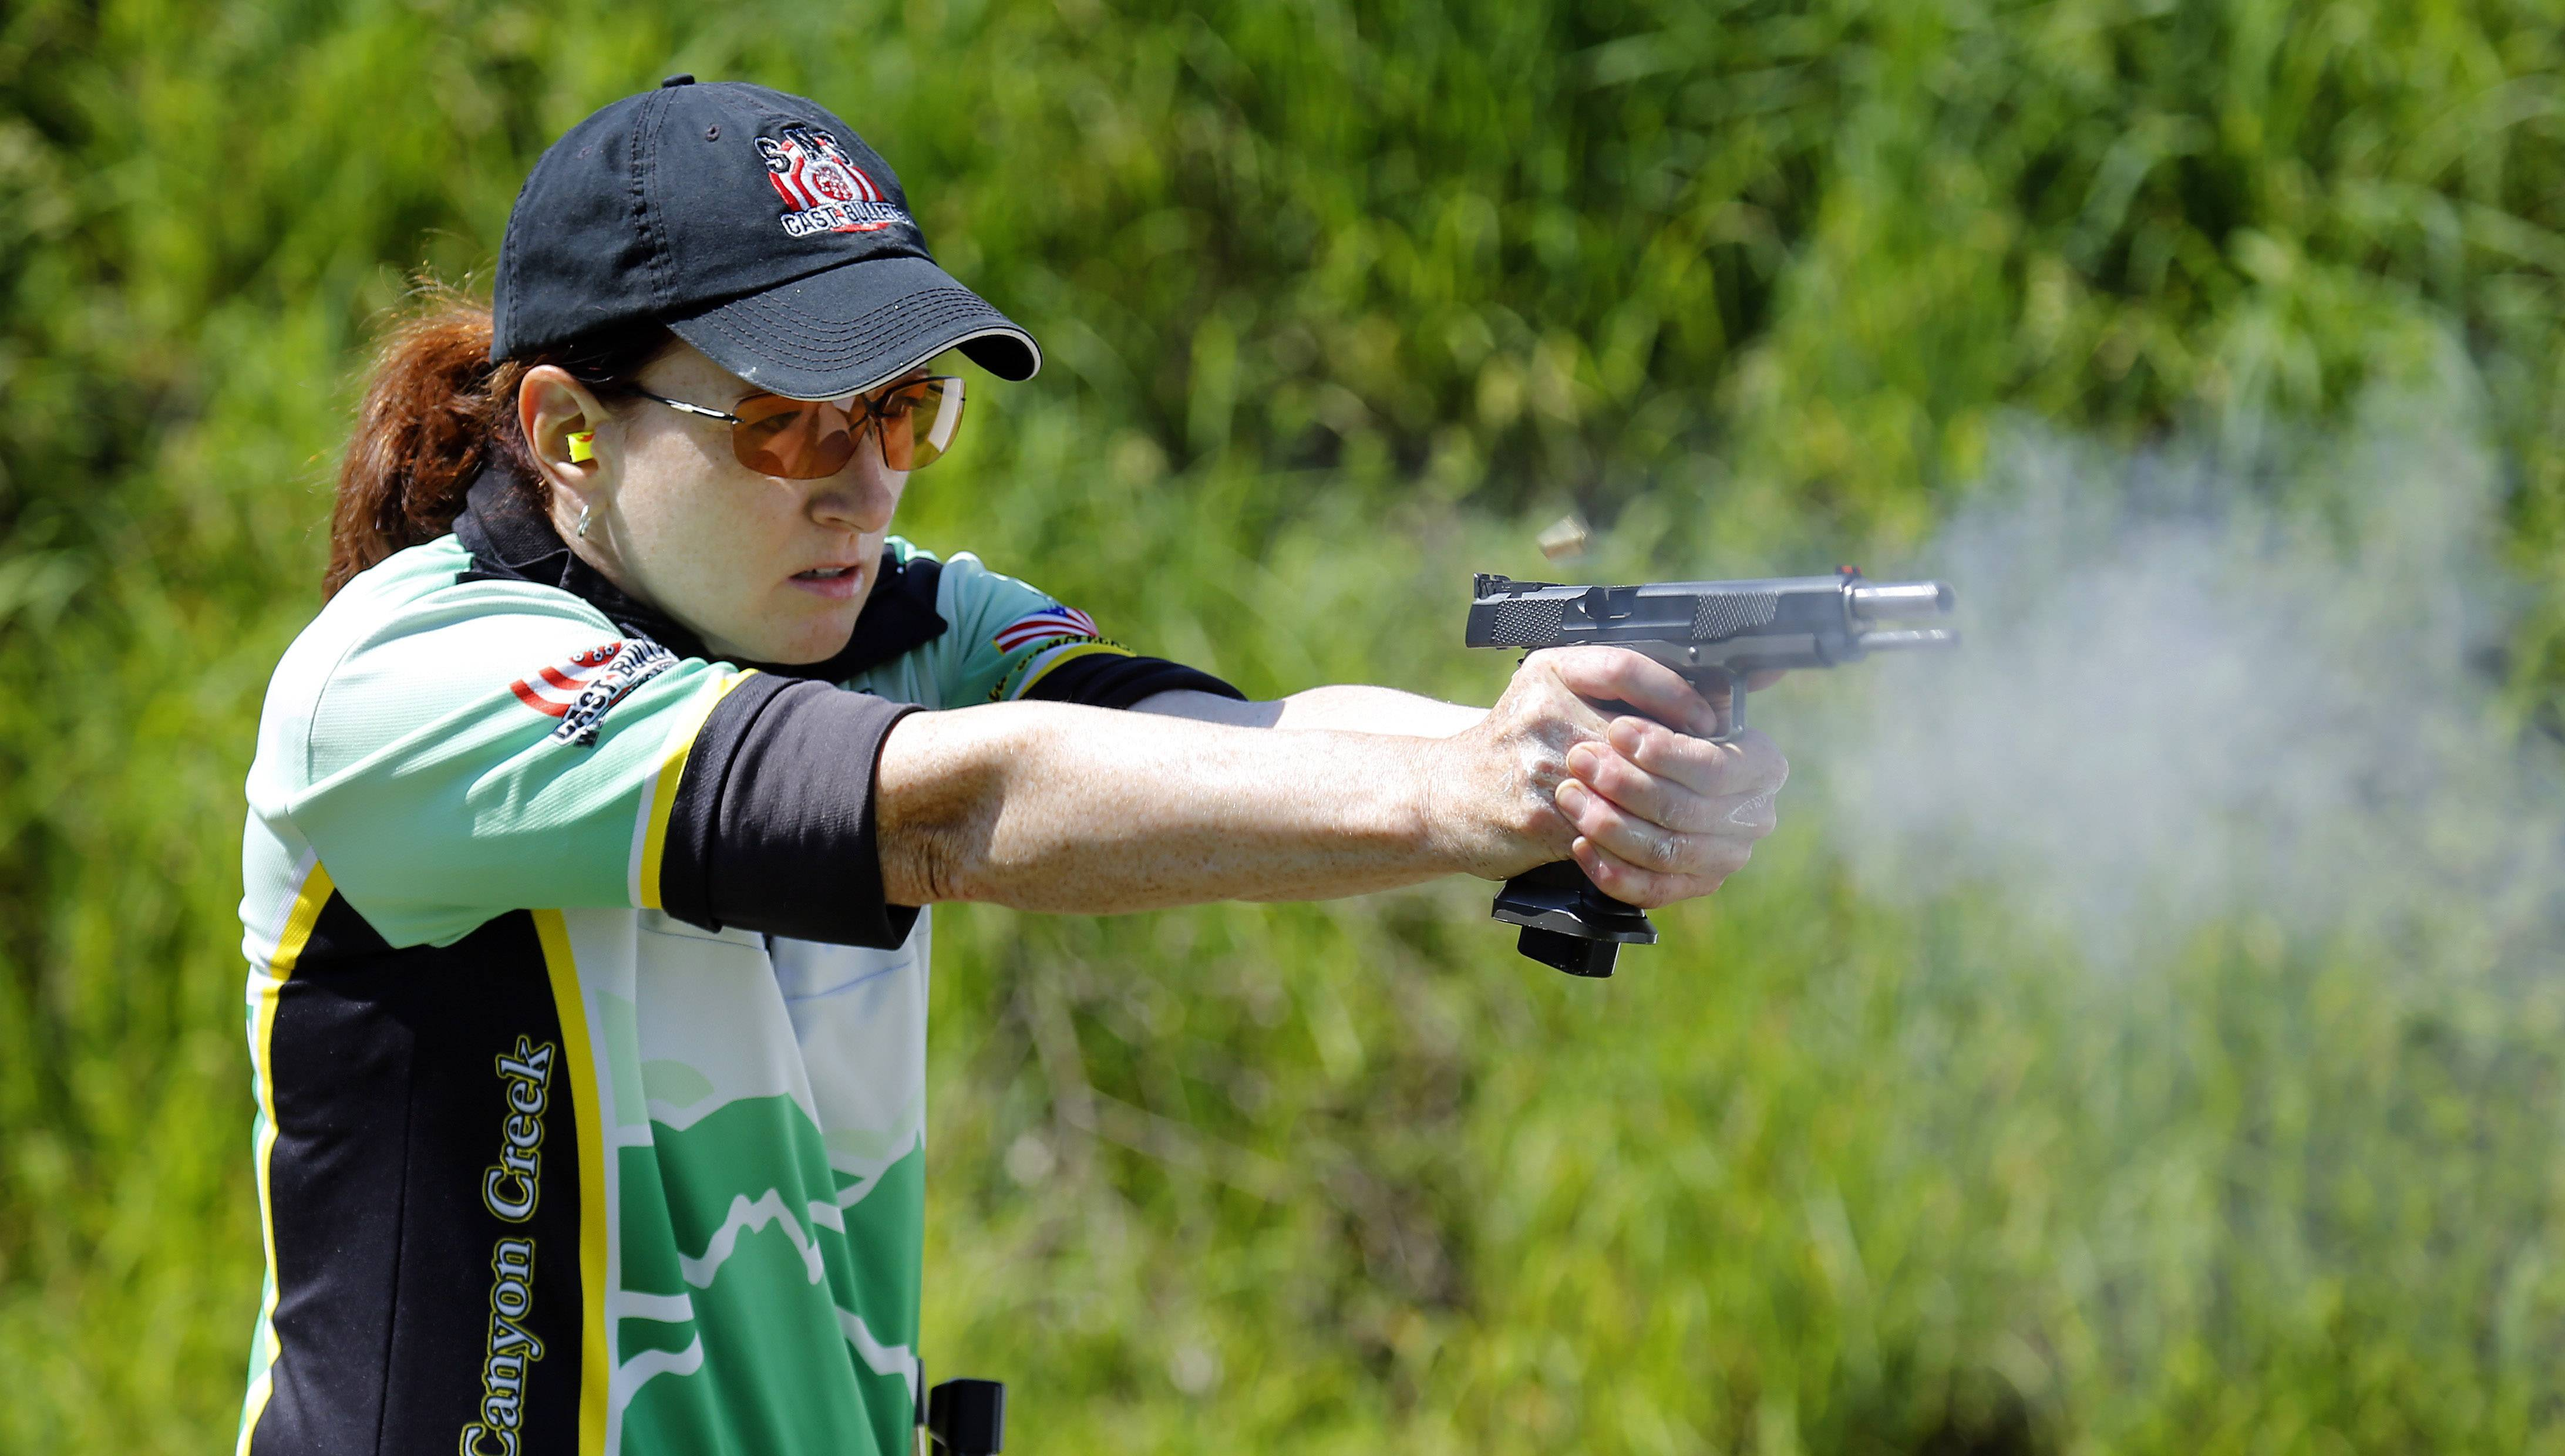 TD Roe concentrates as she shoots at targets during a recent competition at the Oak Park Sportsmen's Club in Plainfield.